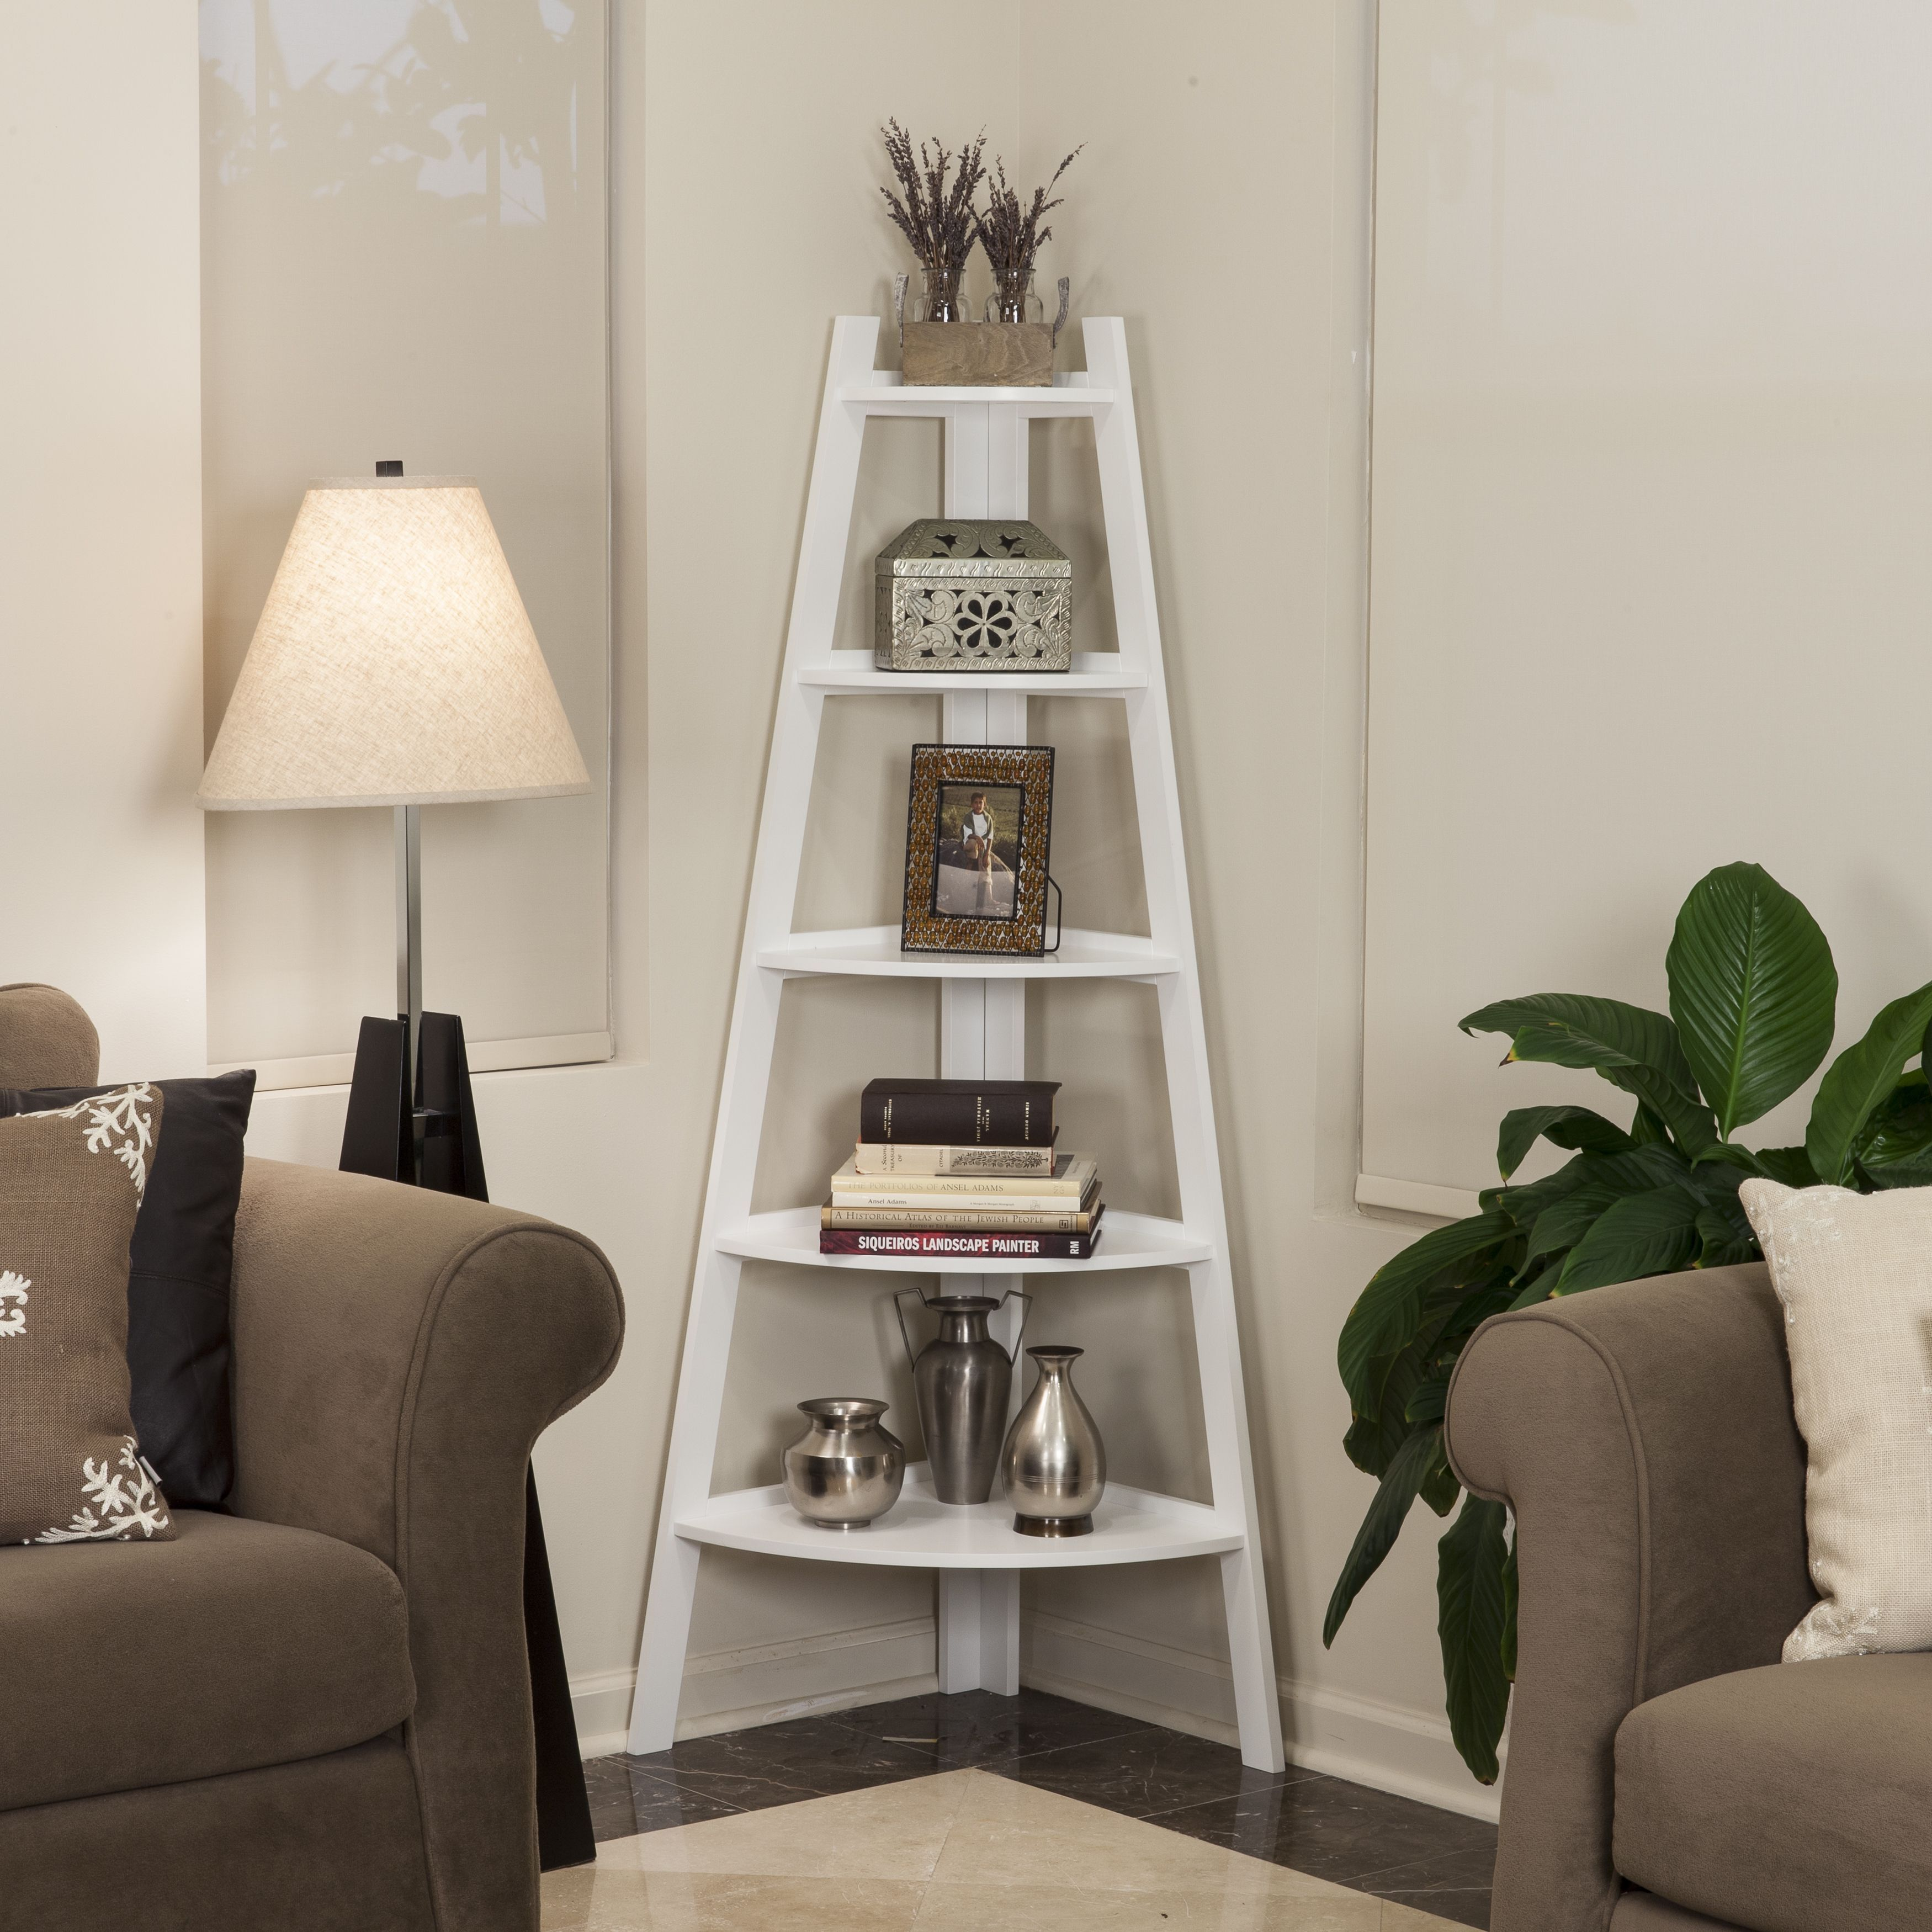 bookshelf storage modern ravishing ladder also room floors organization decorating painted wall bookcase white living well as finished on shelf for b grey ideas inspiration picturesque wooden small design brown